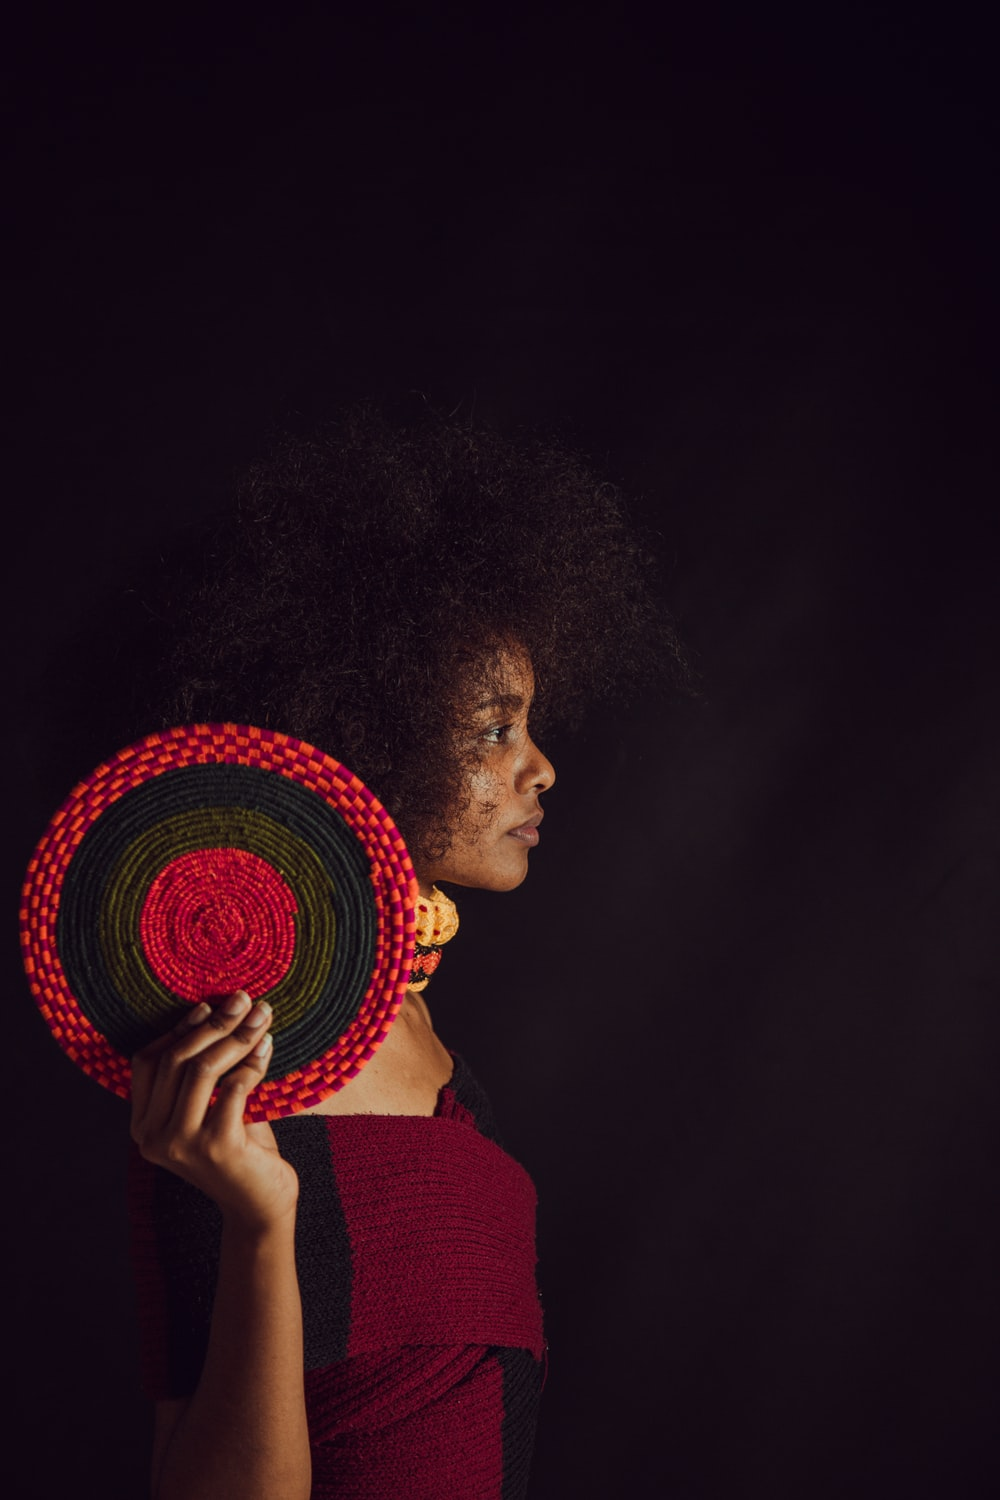 woman wearing maroon and black top holding round black and red decor